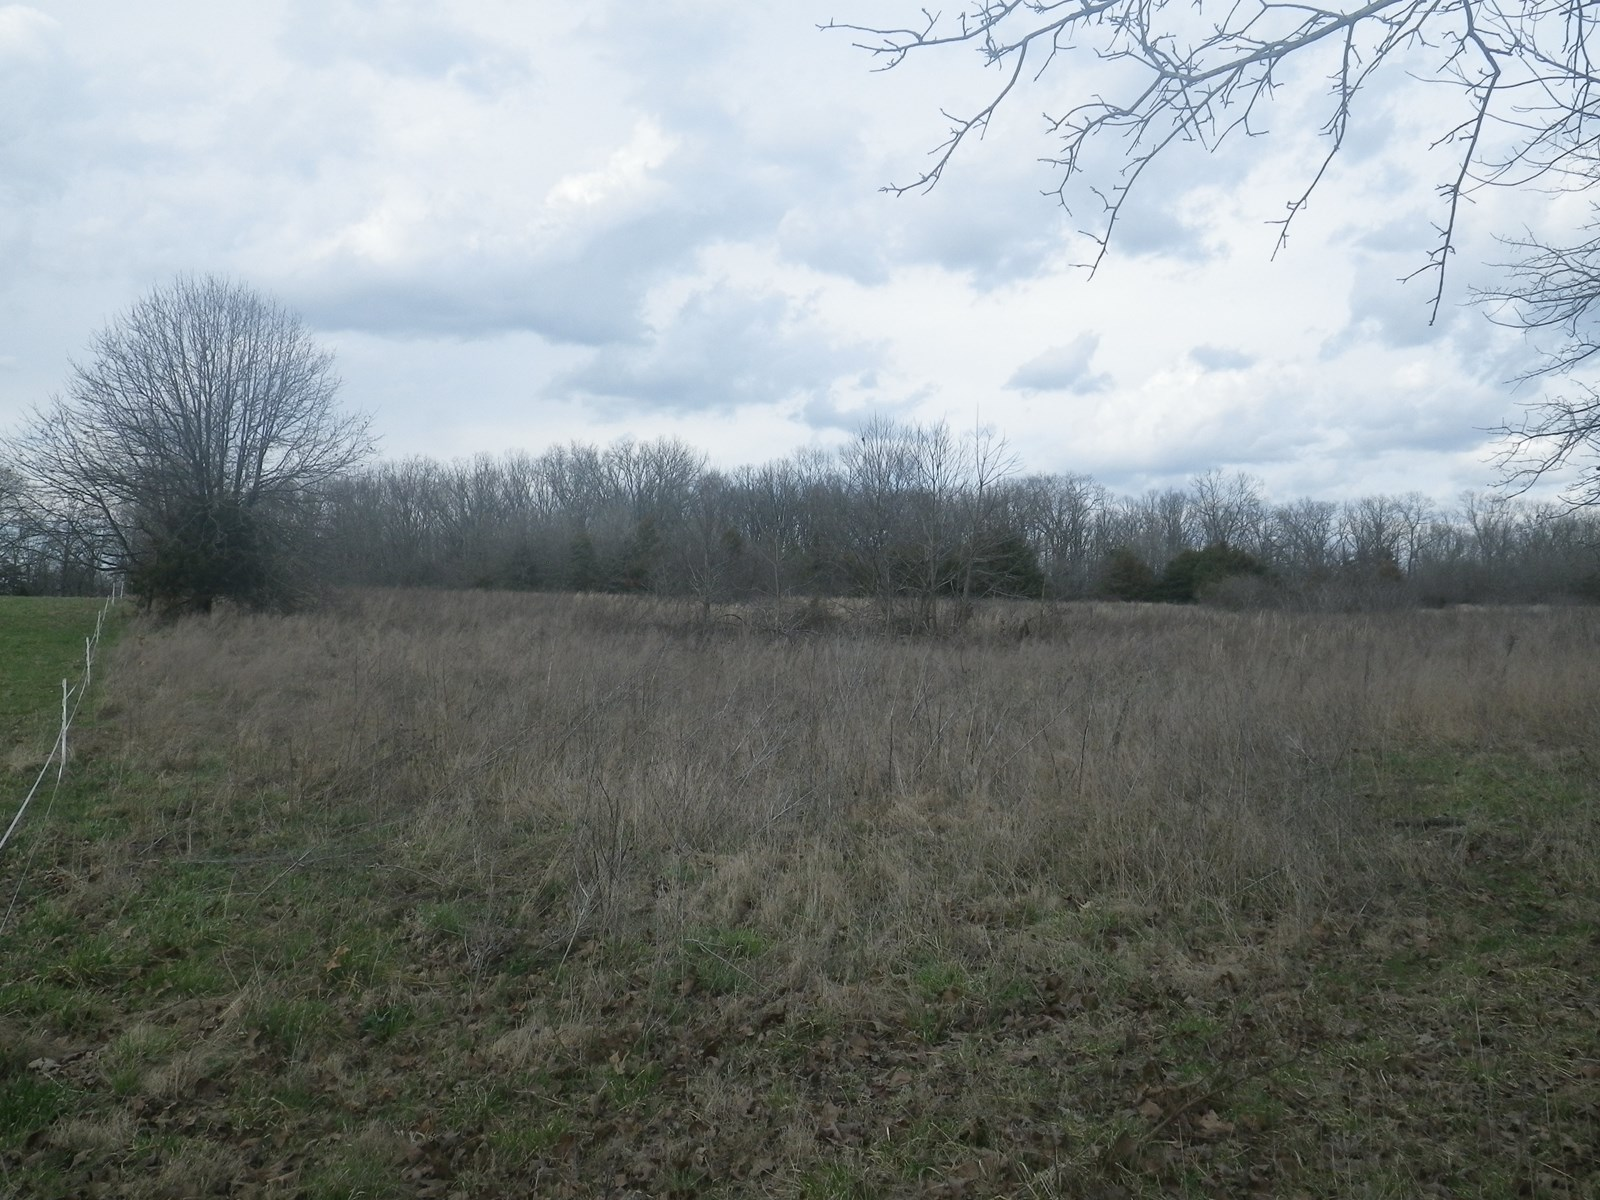 Land for Sale in Southern Missouri - Hunting - Build Here